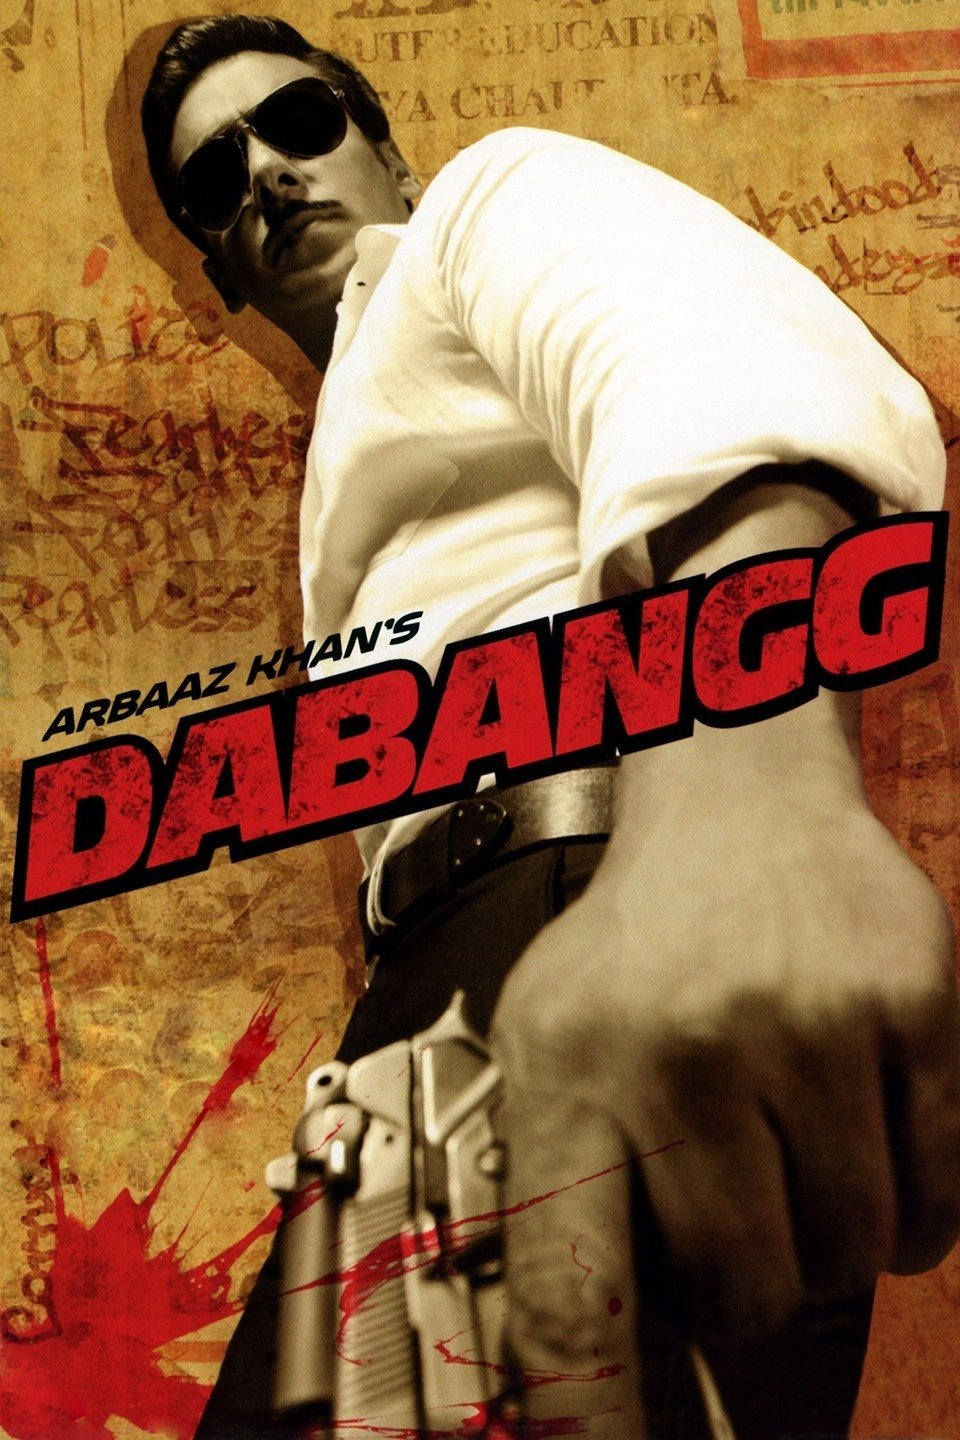 Dabangg 2010 Hindi Full Movie Free Download 720p BluRay